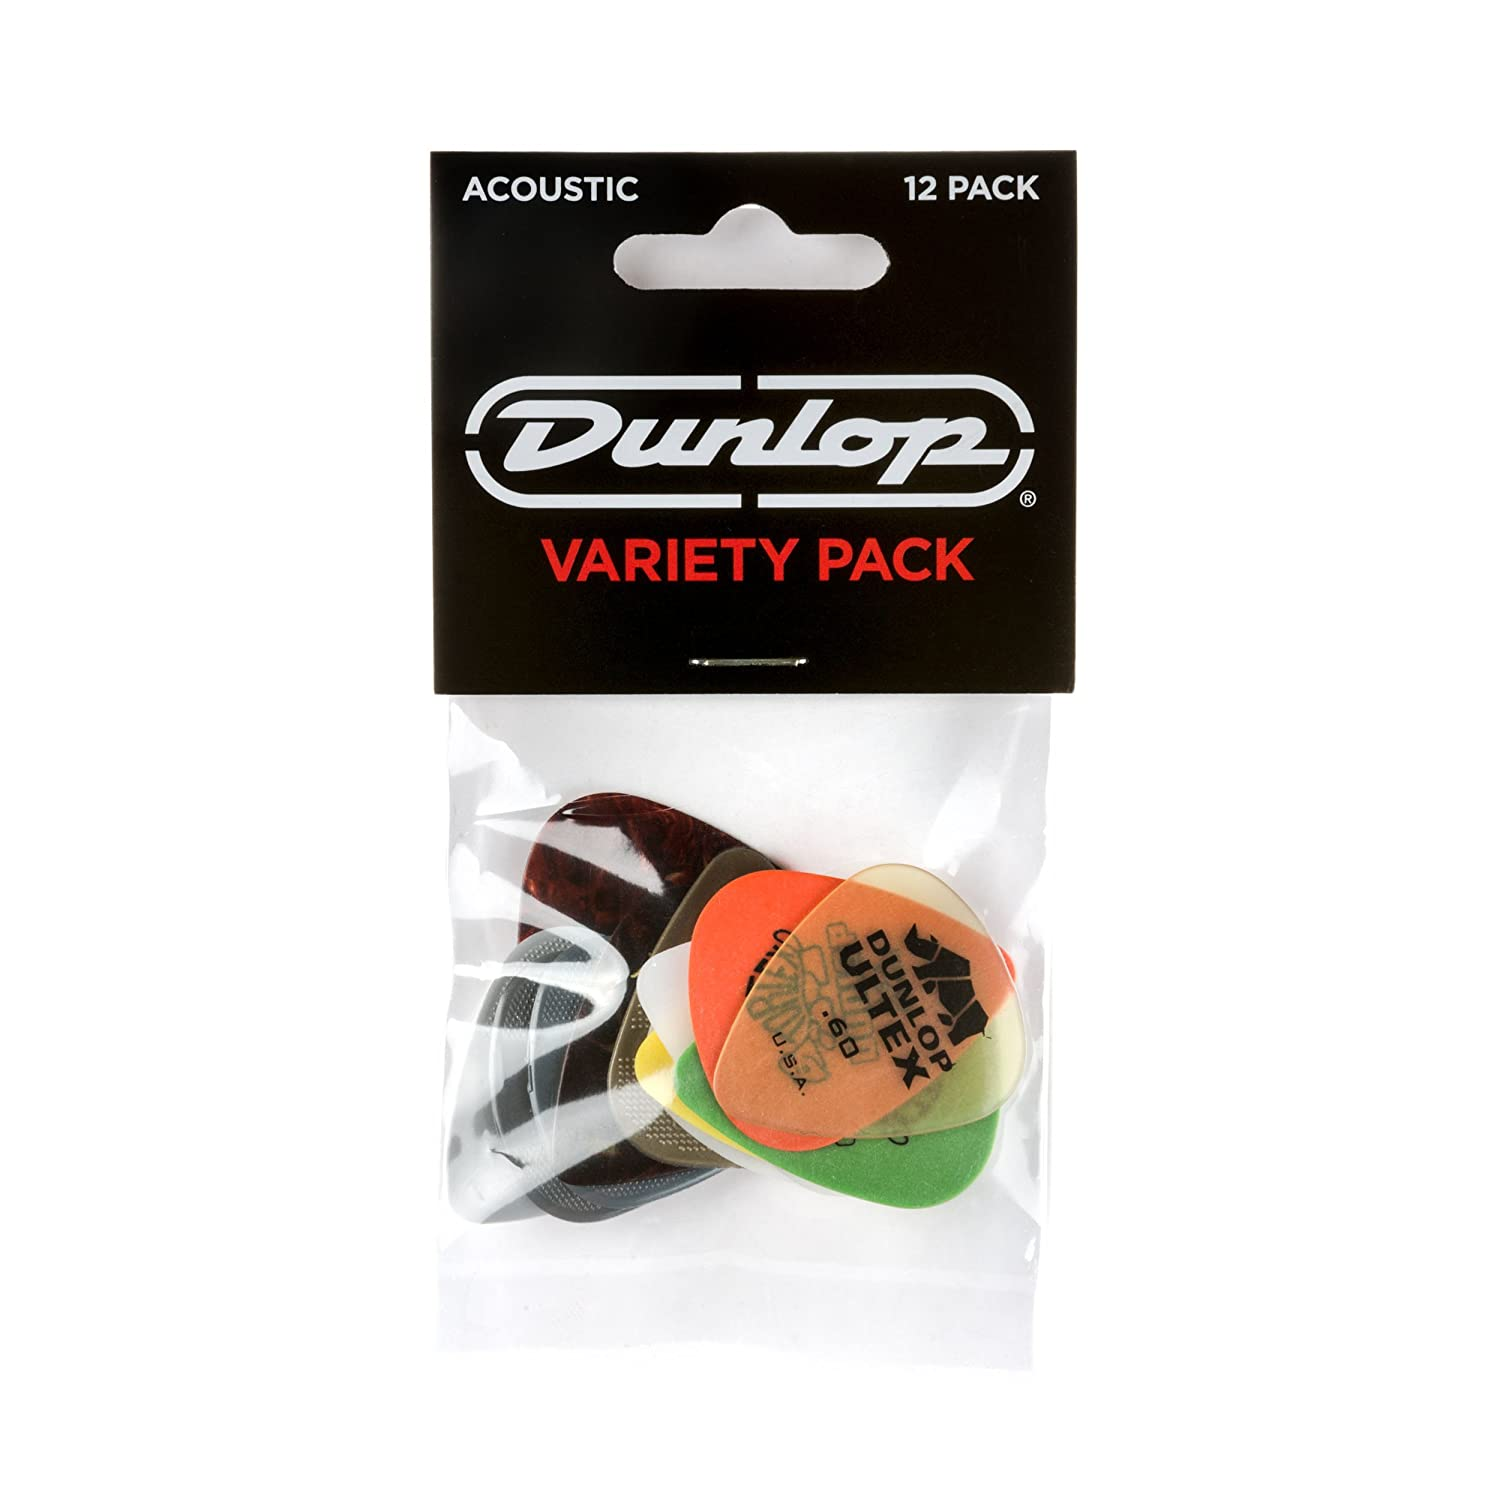 JIM DUNLOP PVP112 Acoustic Guitar Pick Variety Pack